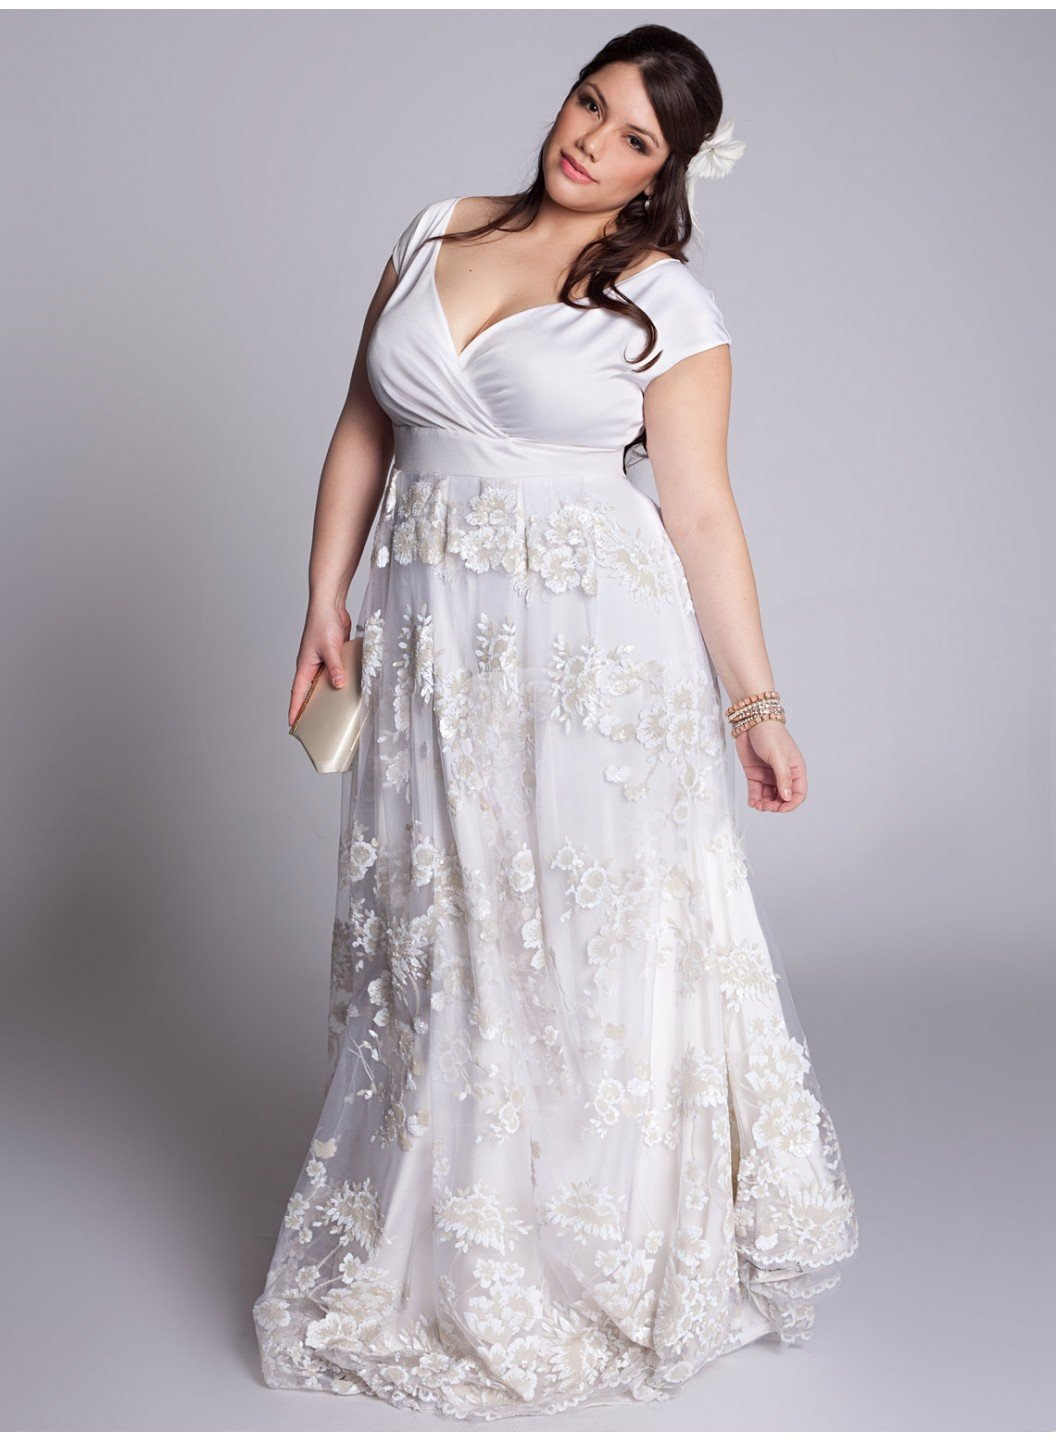 The stylista wedding dresses for any body shape the for Busty brides wedding dresses